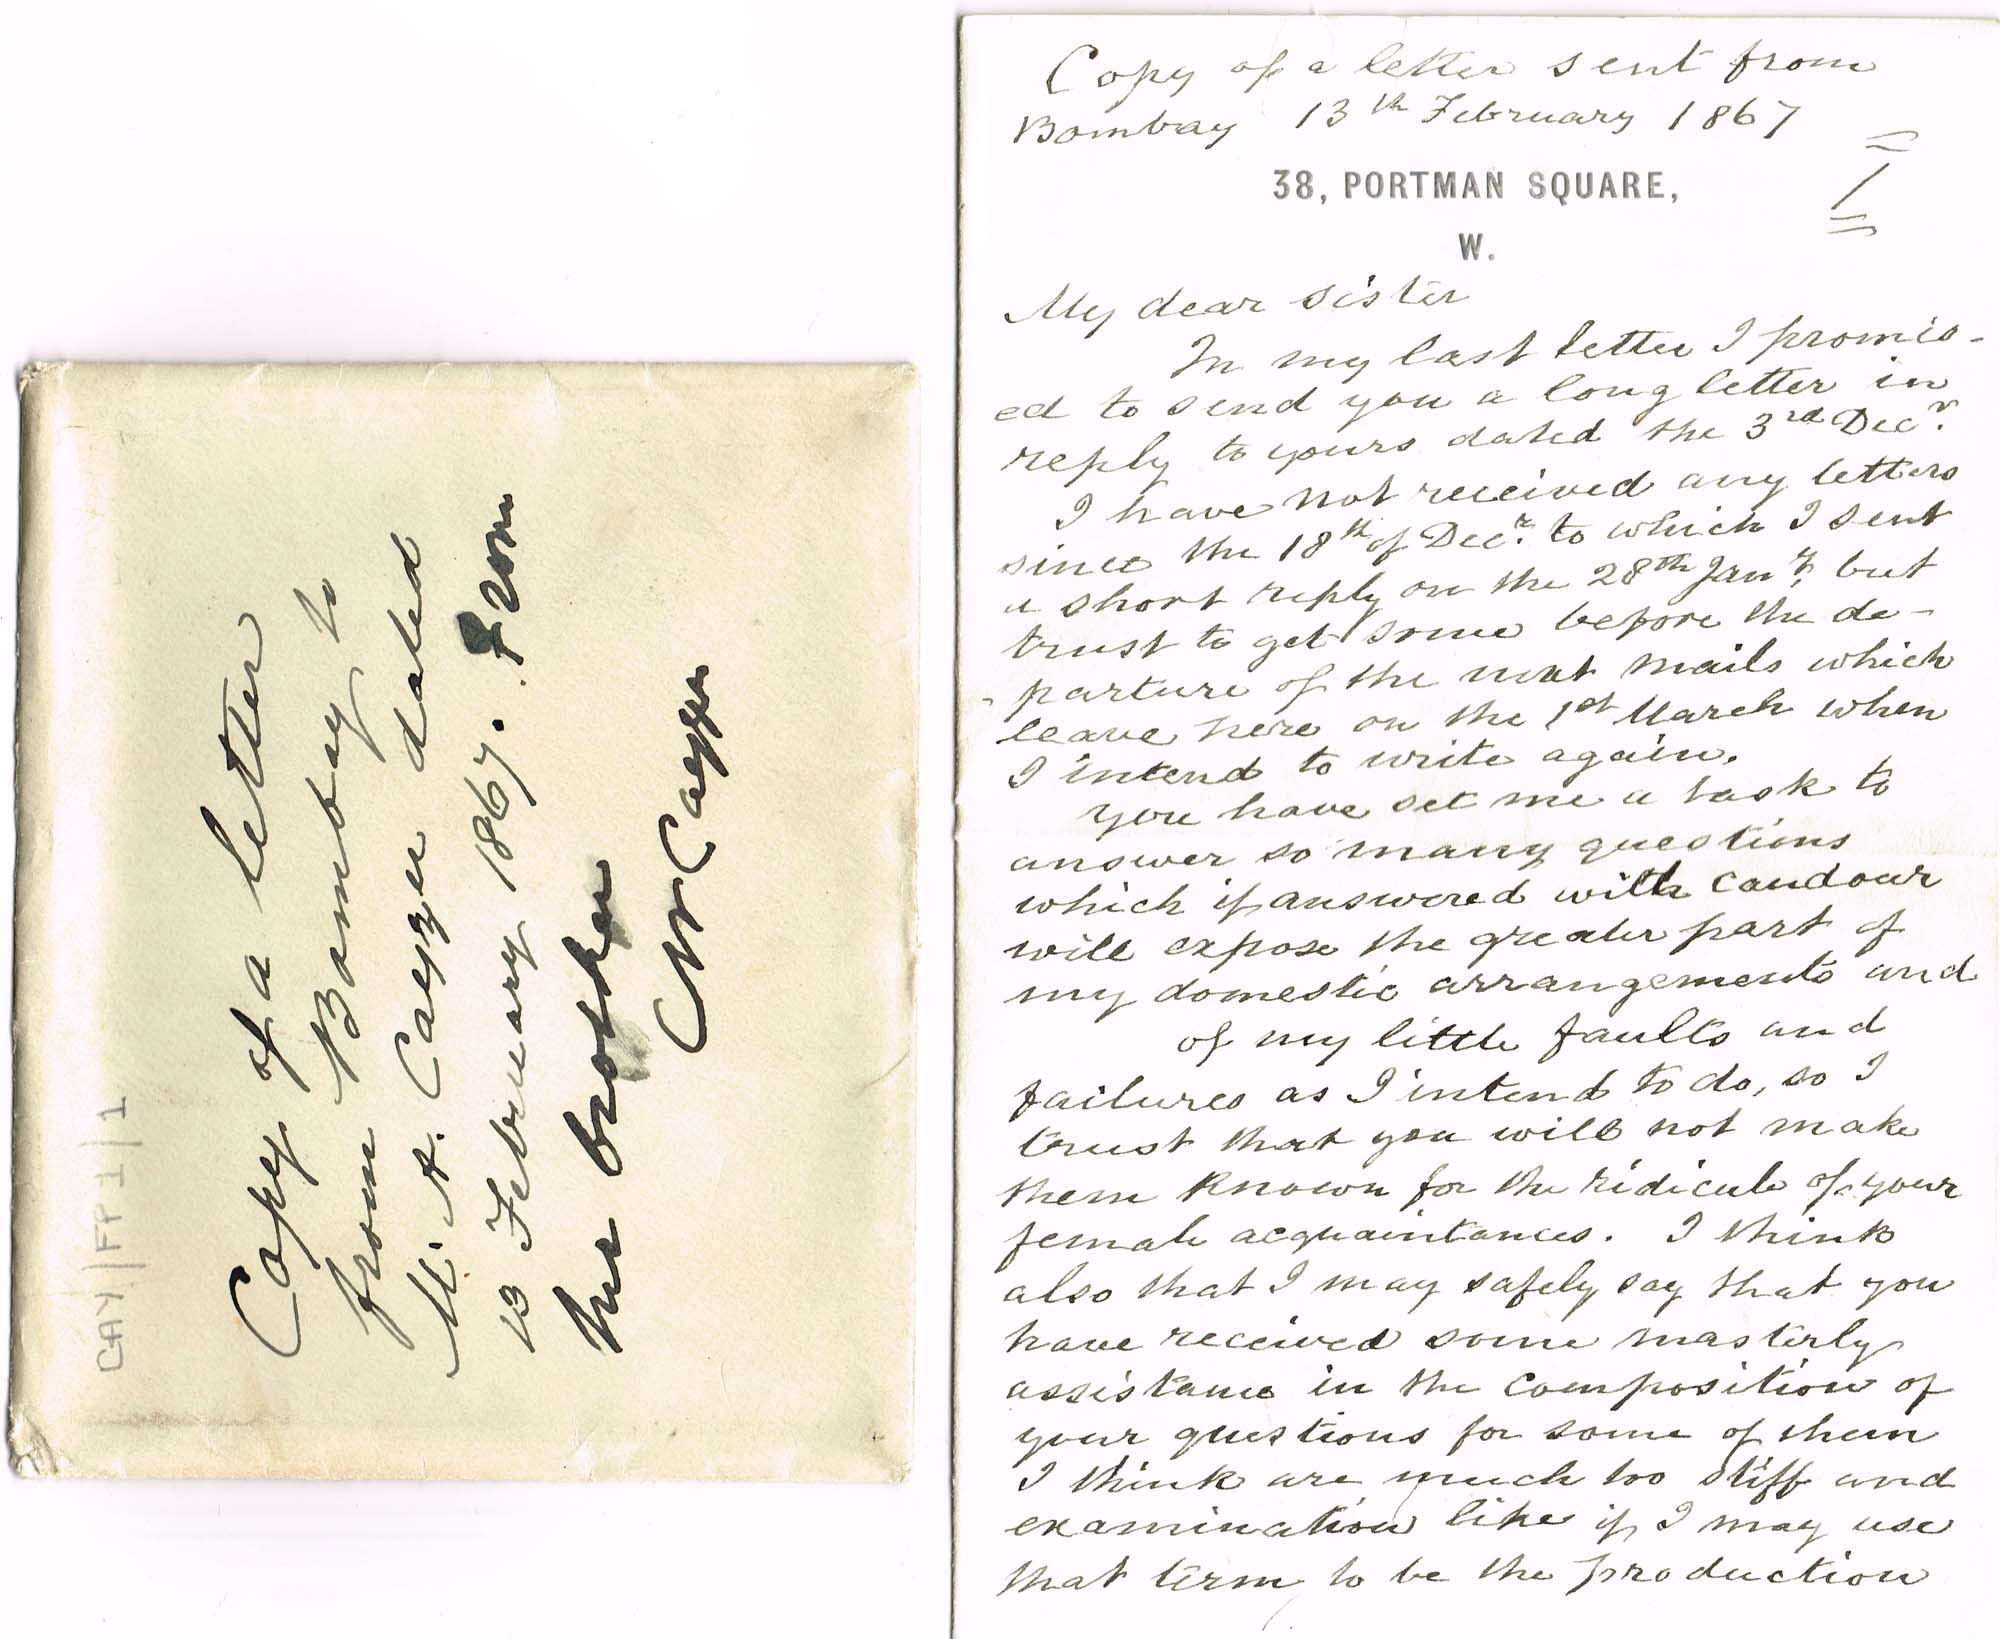 Digitised image of an envelope and first page of a contemporary handwritten copy of a letter dated 13 February 1867, from Charles Cayzer in India to his sister in England.